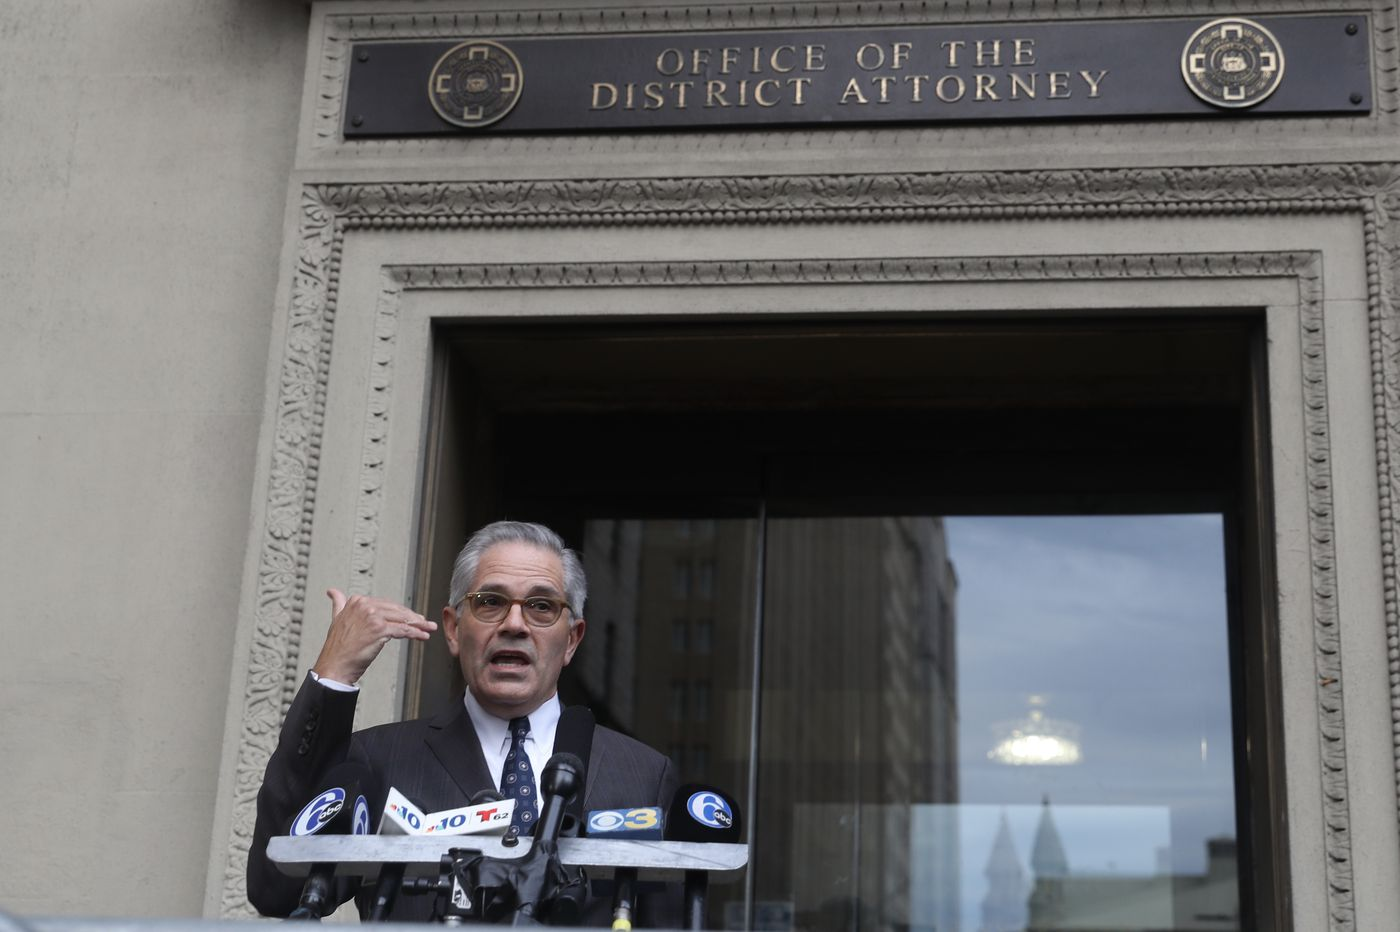 Retired Philly cops looking to unseat Larry Krasner lose first battle with billionaire George Soros